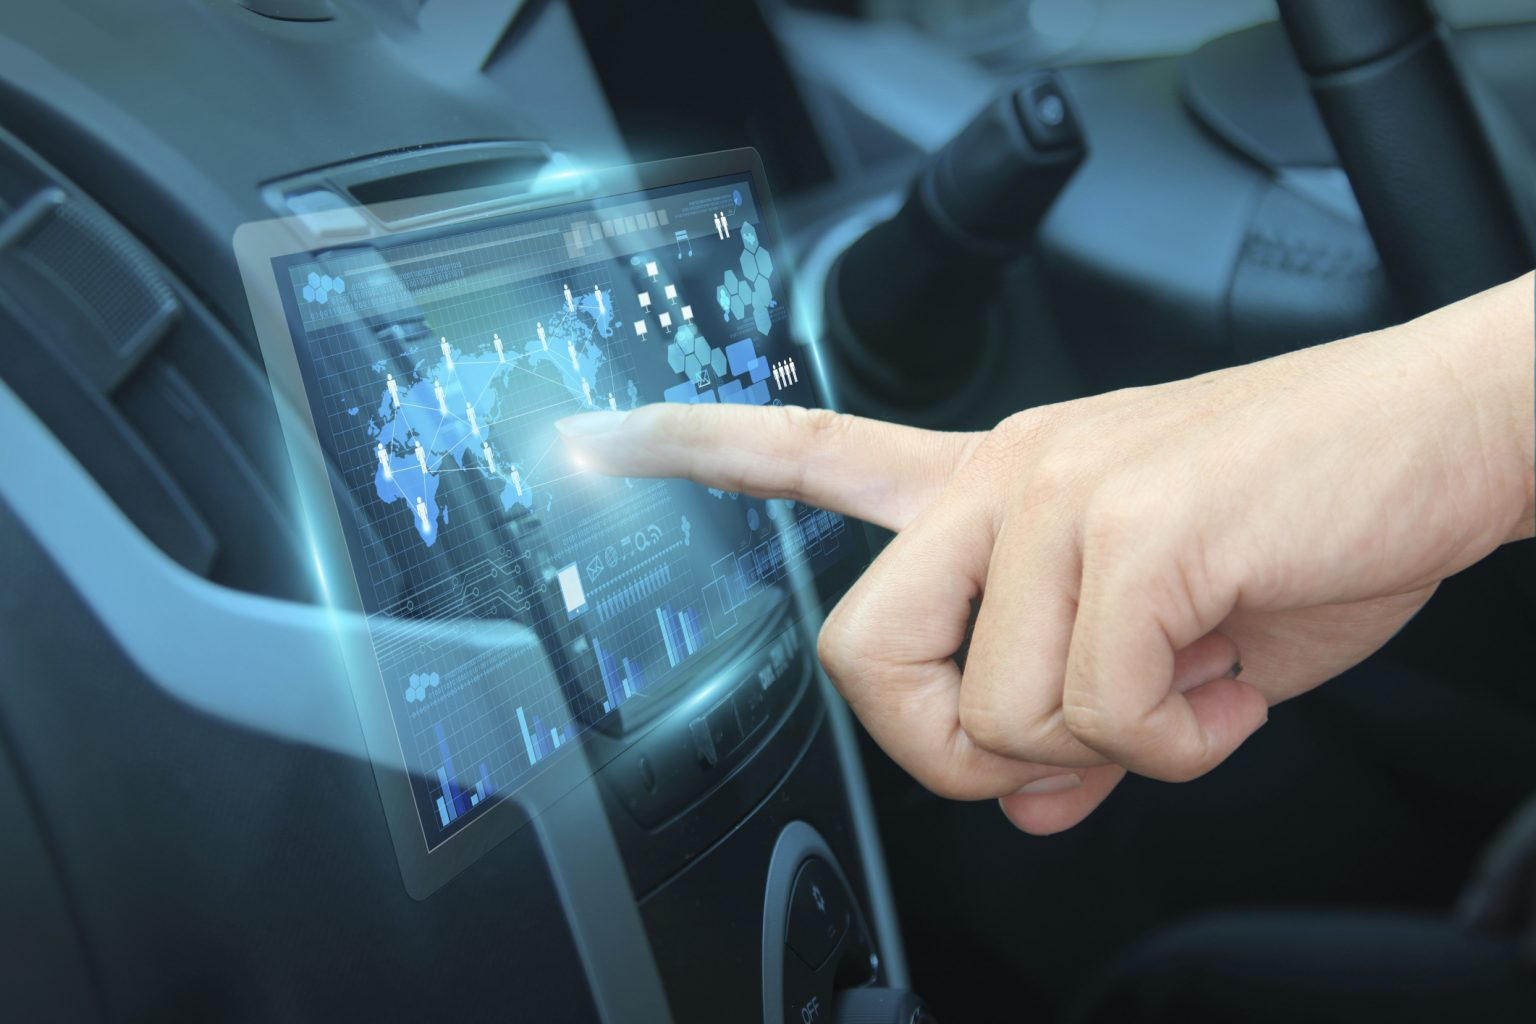 7 Great New Car Gadgets You Should be Excited About